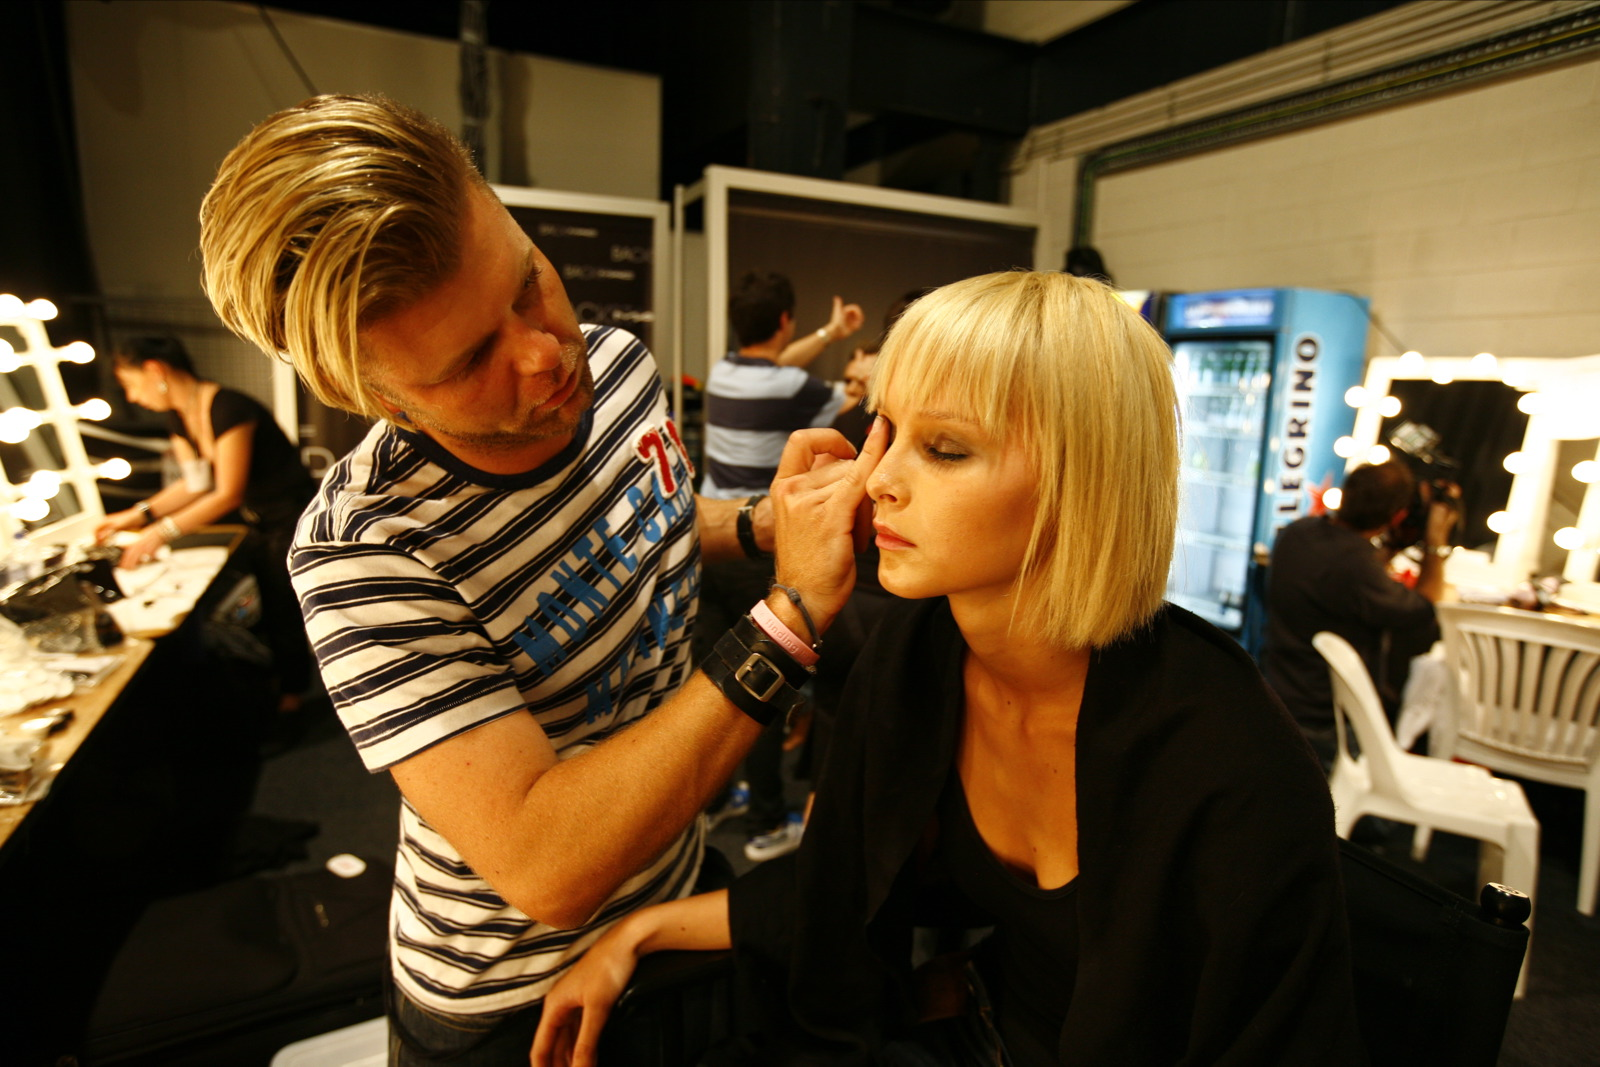 File:Makeup artist2.jpg  Wikimedia Commons